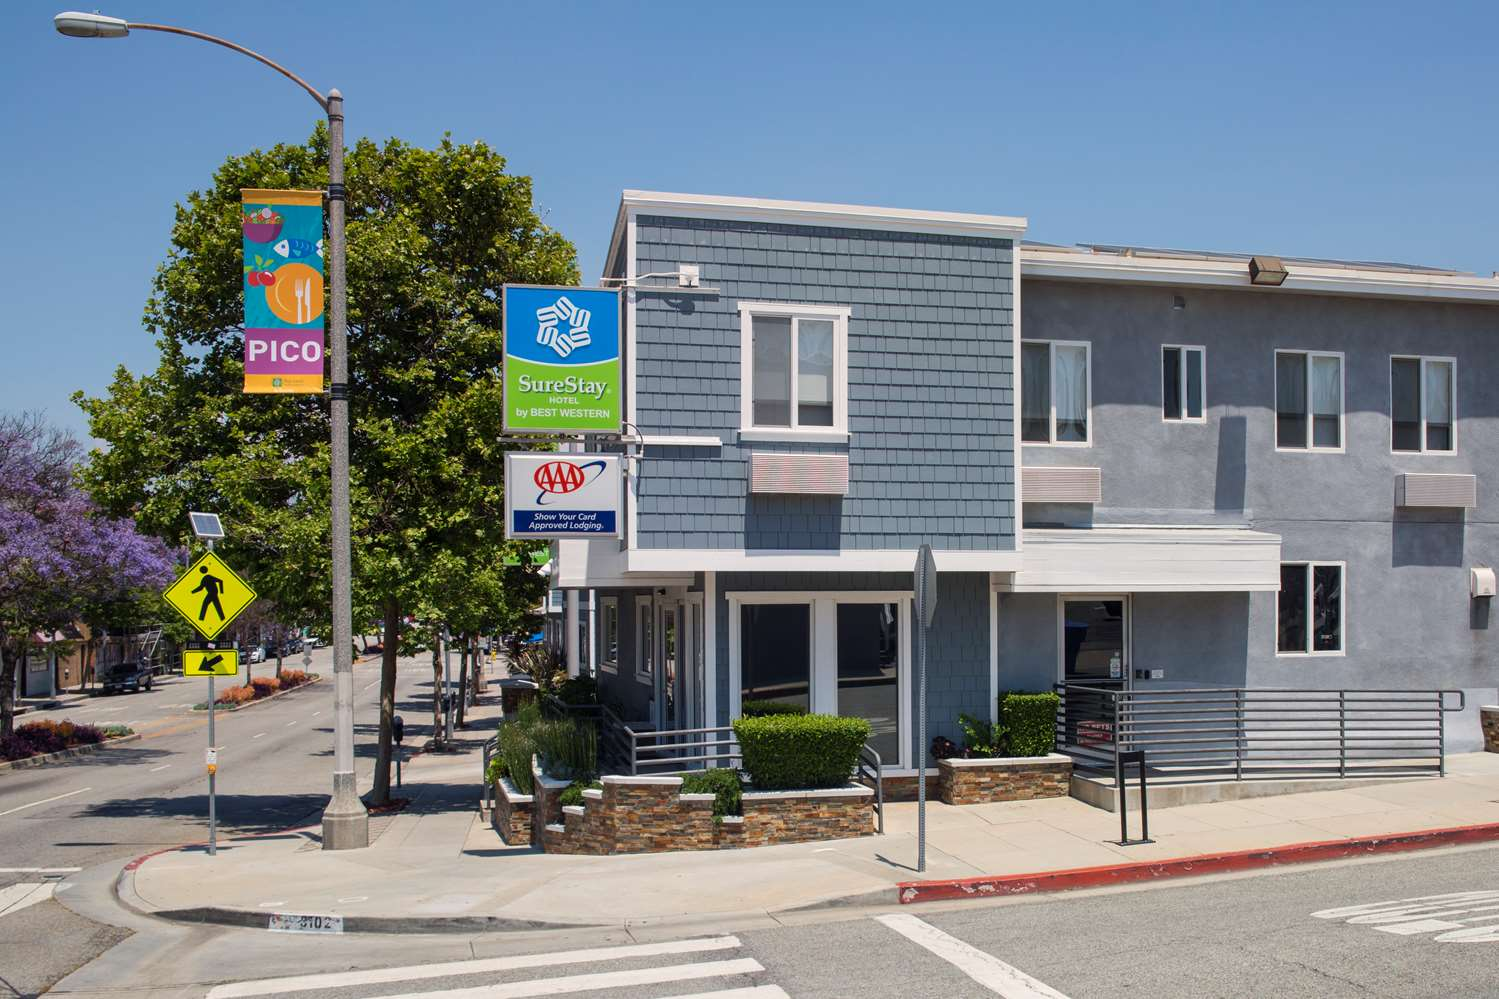 Travelodge Pico Blvd Santa Monica